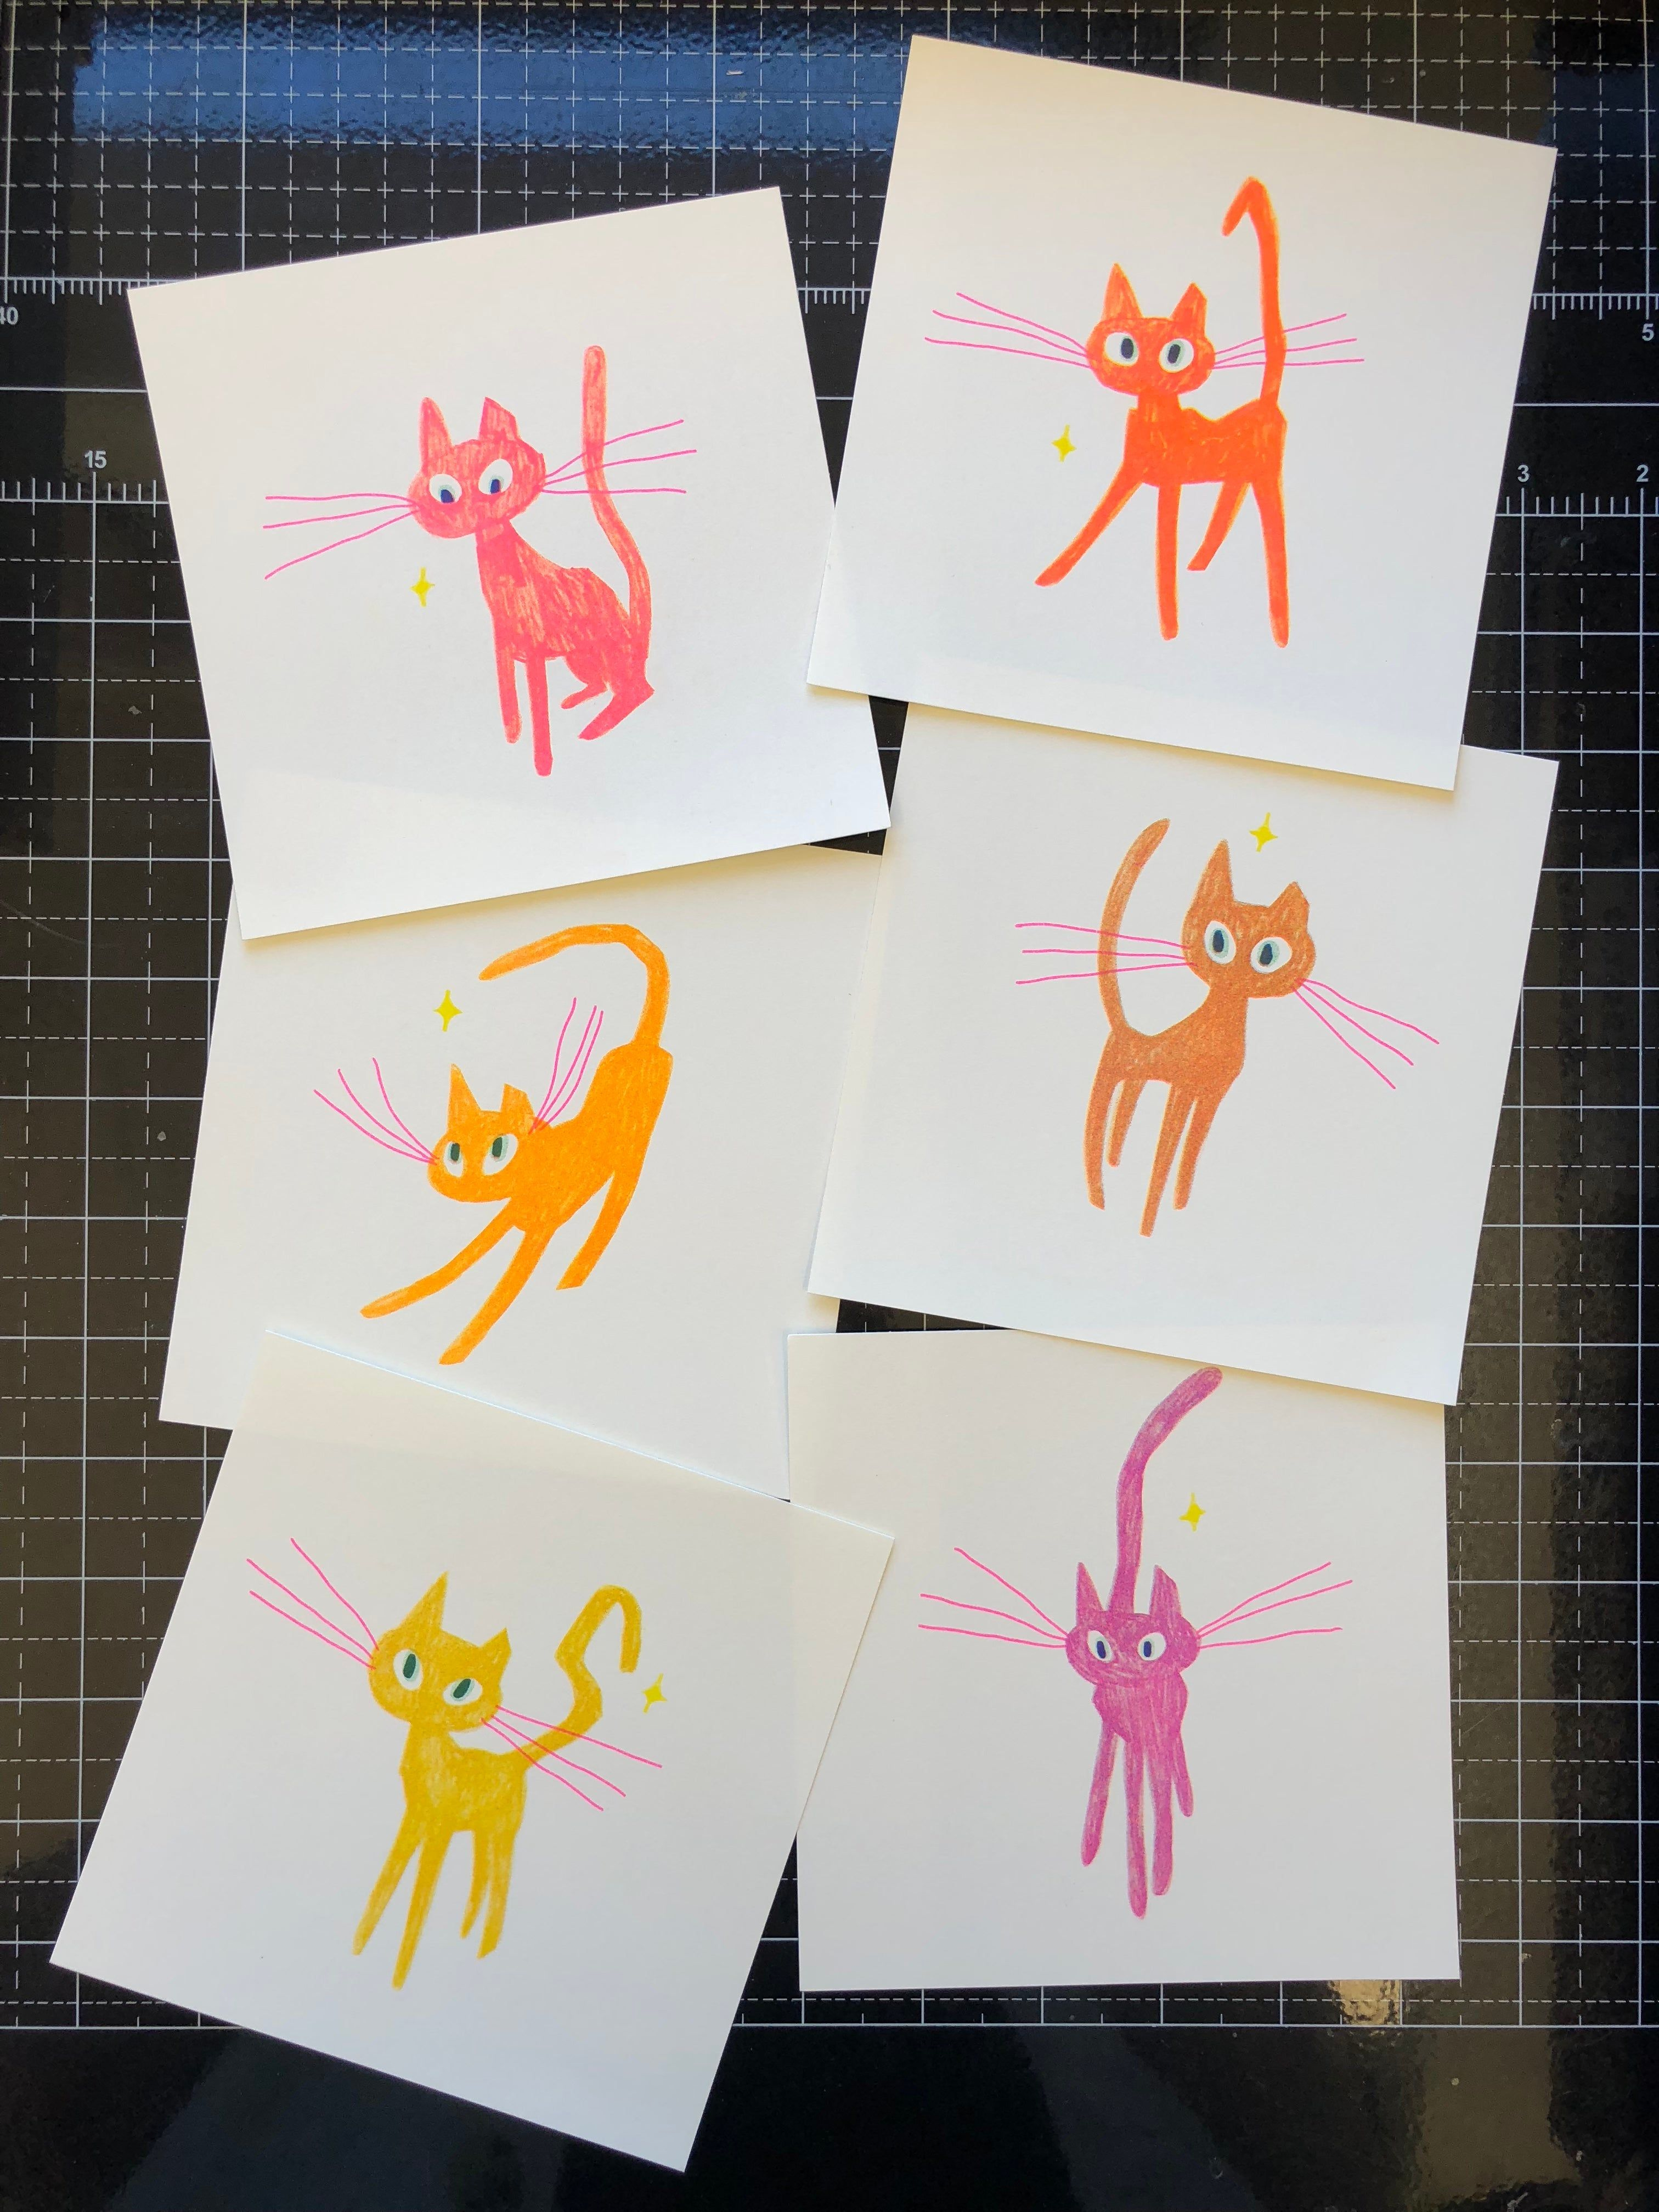 Pink Cat 11x17 Poster Risograph Print 11x17 Poster Pink Cat